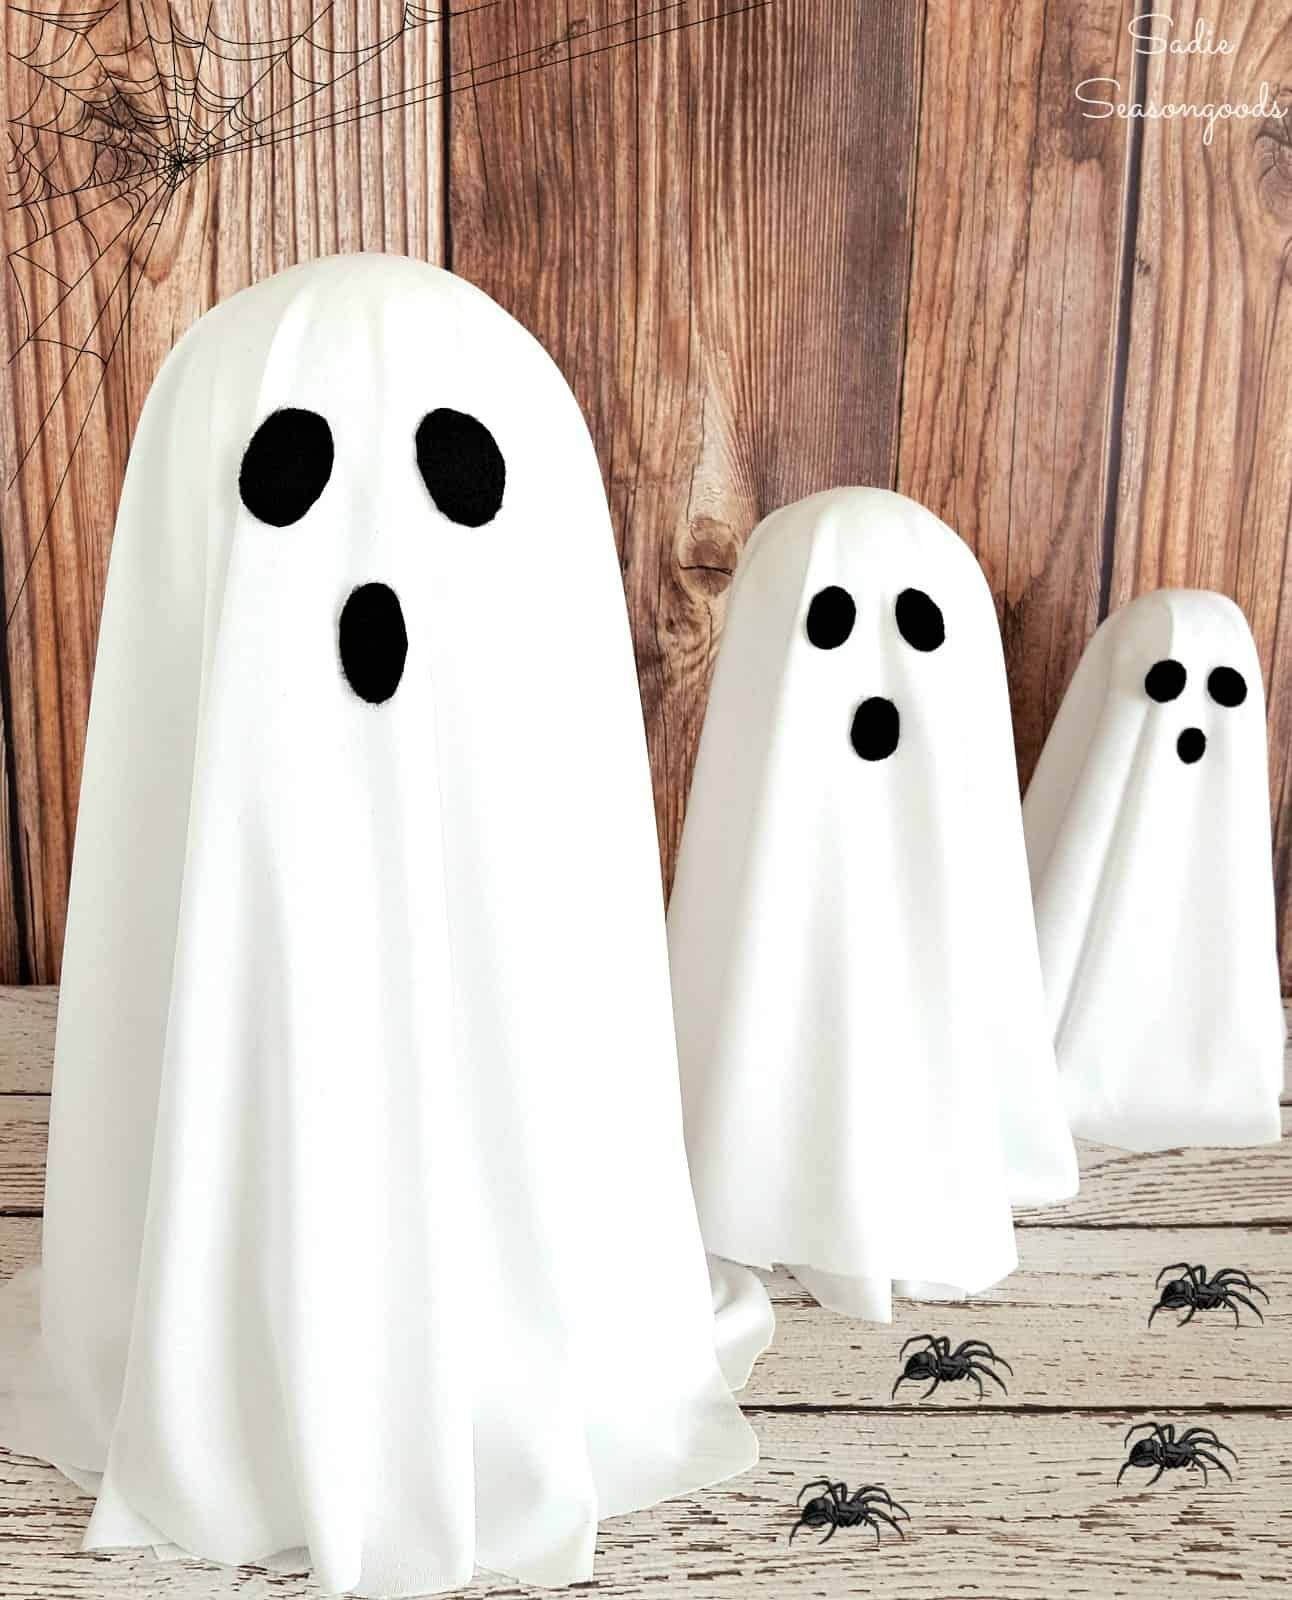 Floating Ghosts Or Friendly Ghosts With This Project For